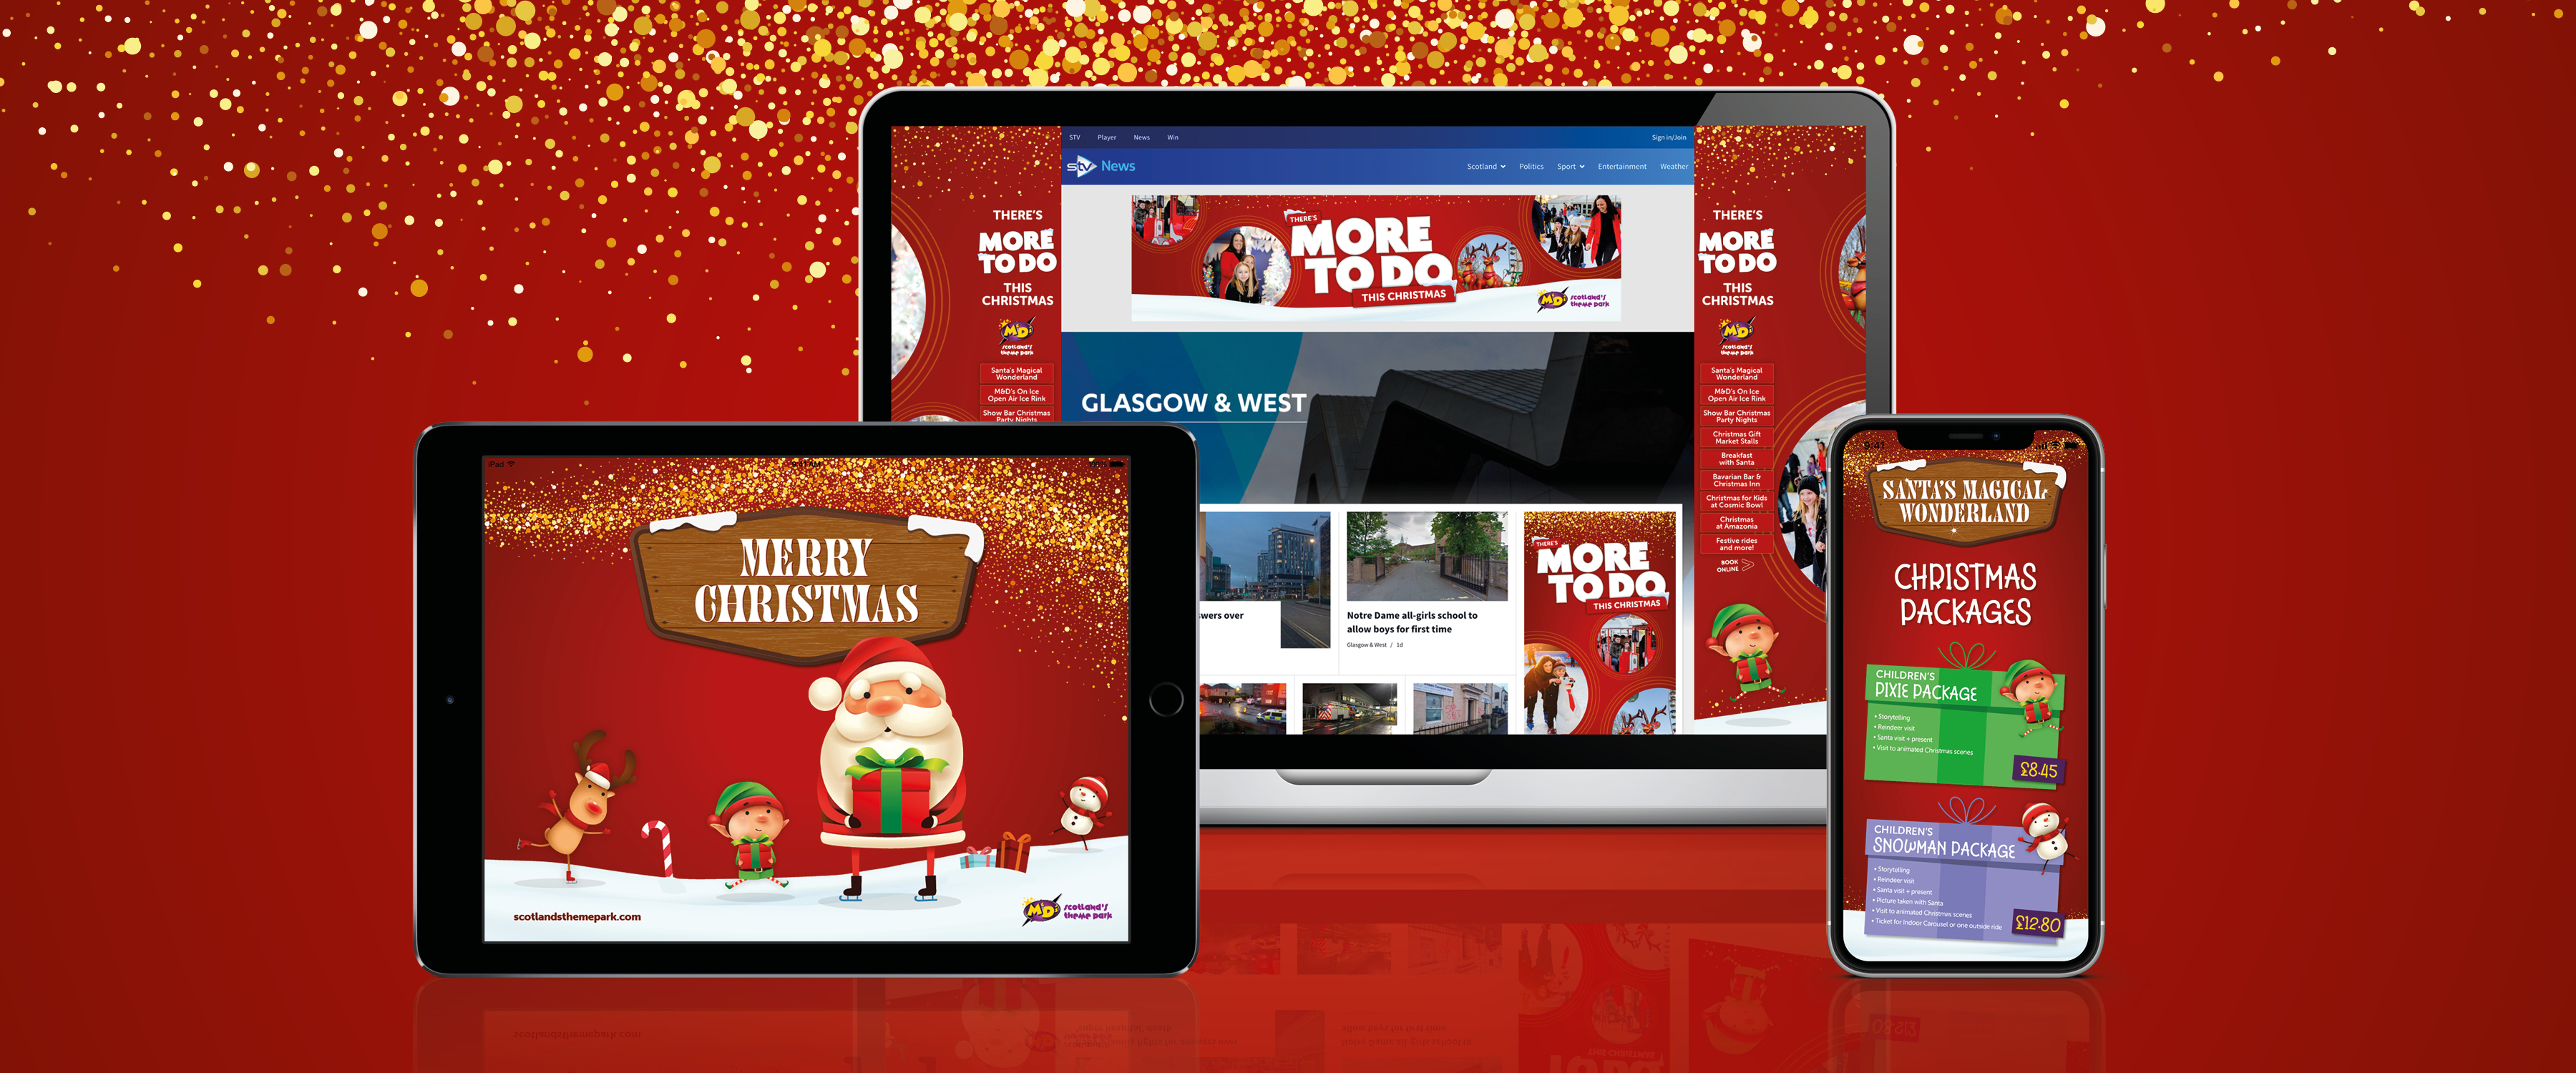 Santa's-Wonderland-Devices-Mock-Up-3600x1500